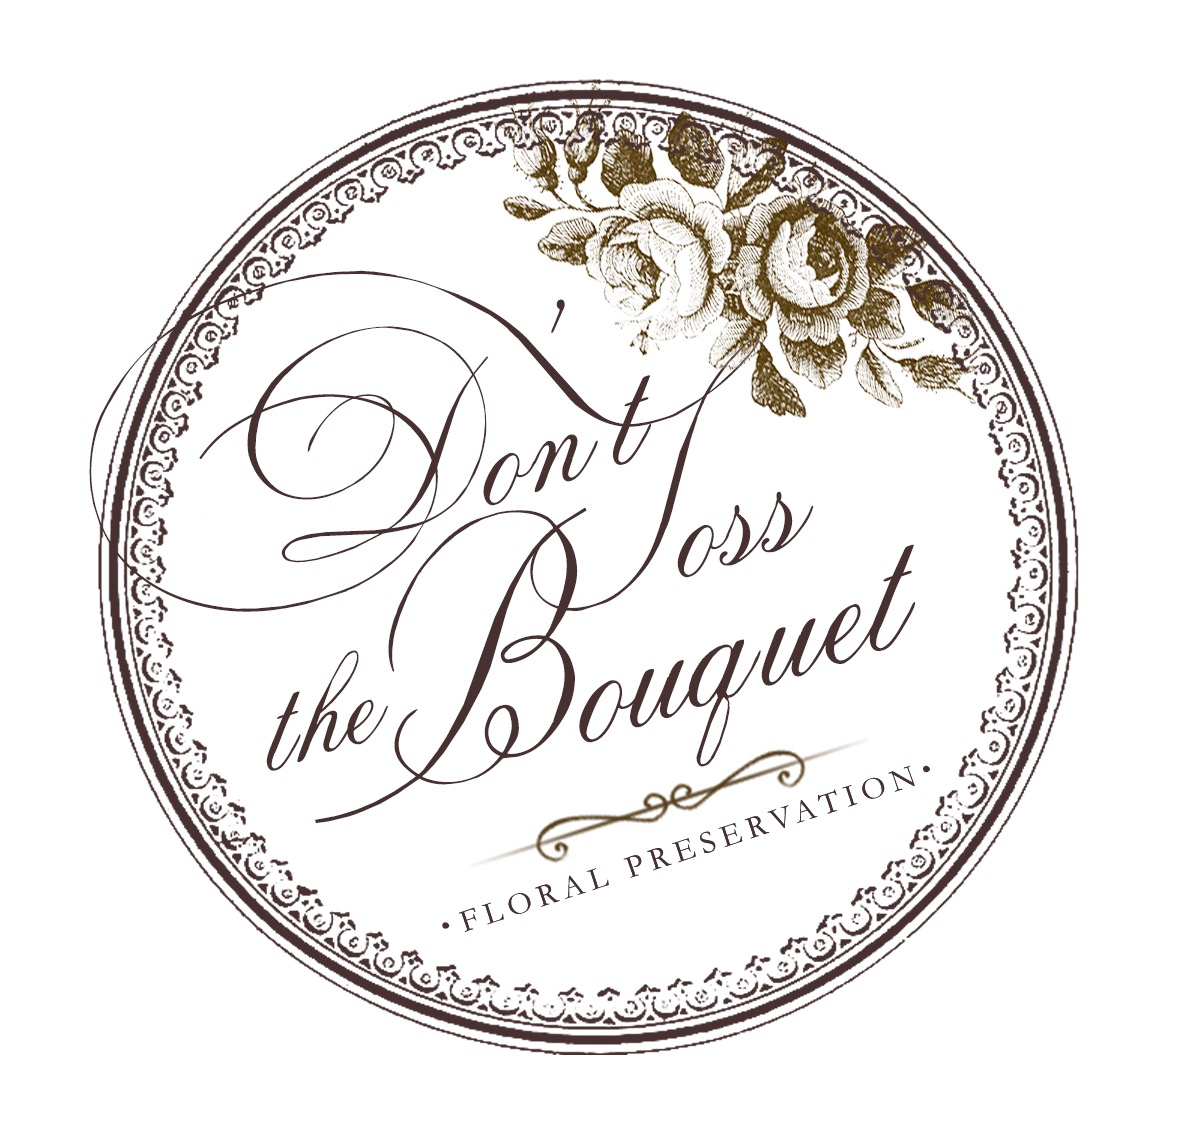 Don't Toss the Bouquet Floral Preservation Logo